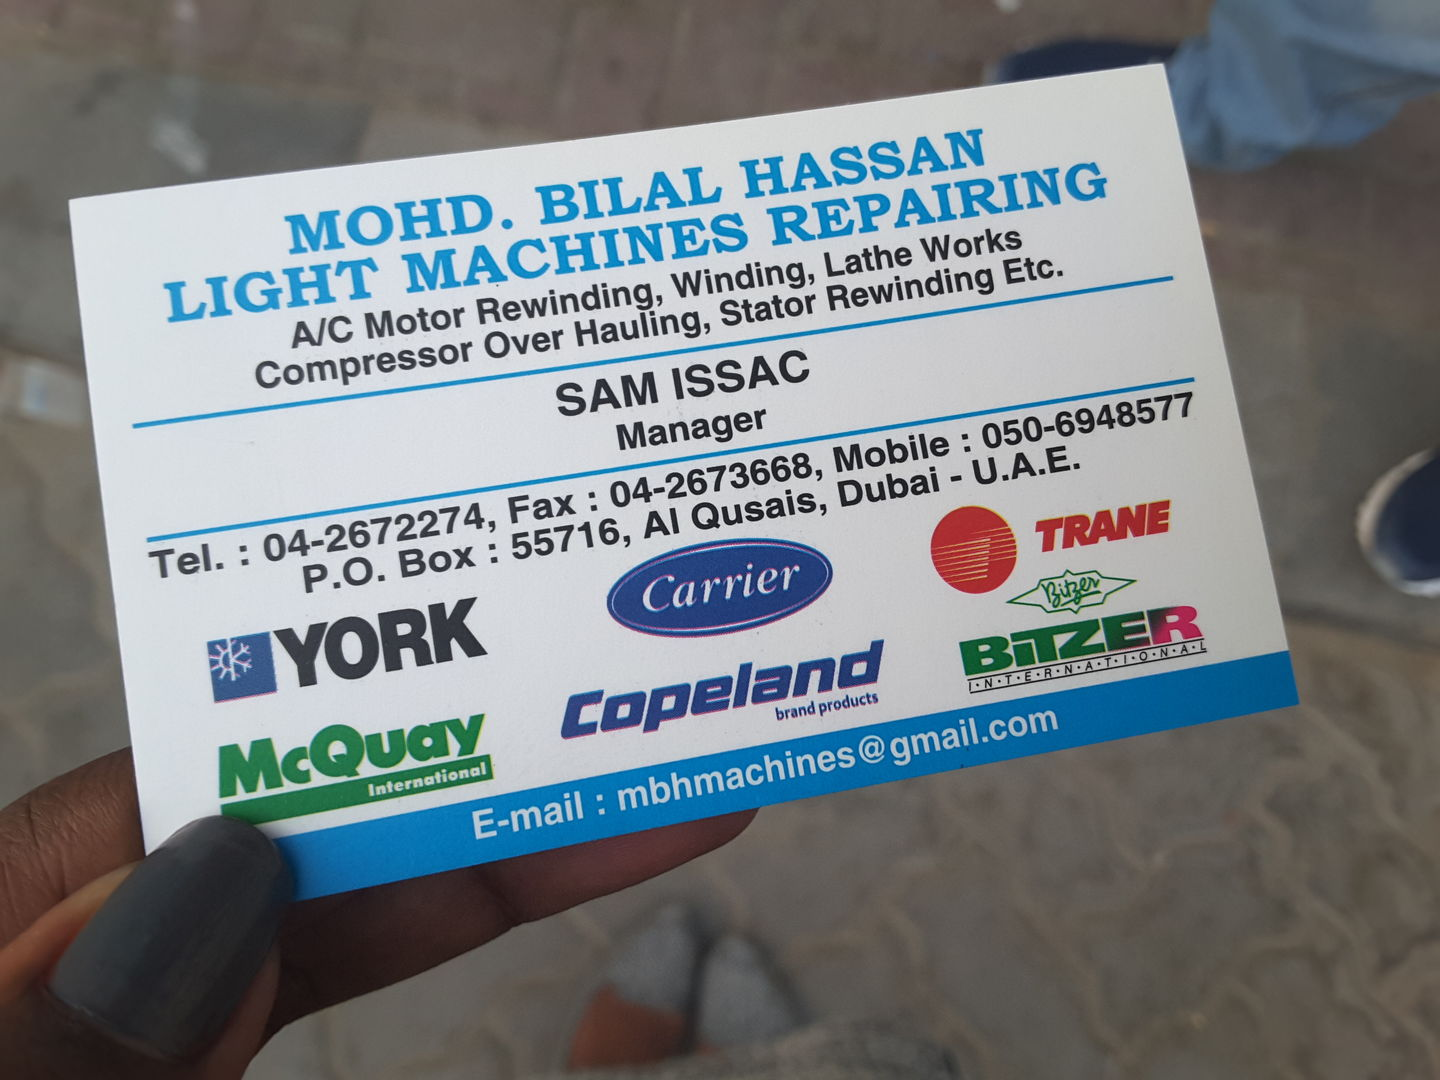 HiDubai-business-mohd-bilal-hassan-light-machines-repairing-home-handyman-maintenance-services-al-qusais-industrial-1-dubai-2